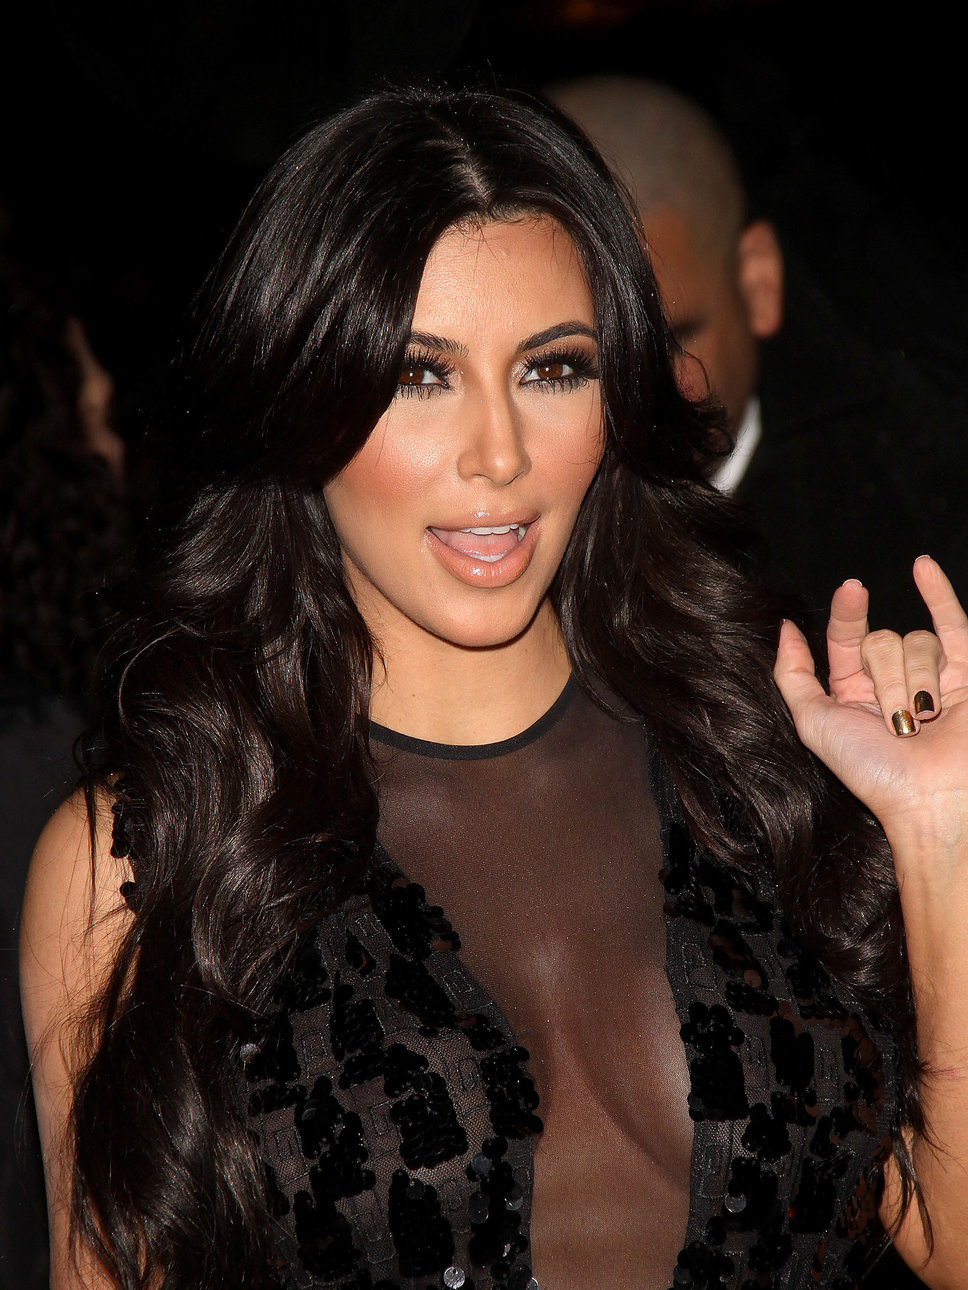 Kanye West drops $50000 on Kim Kardashian through Intimate Paris ...